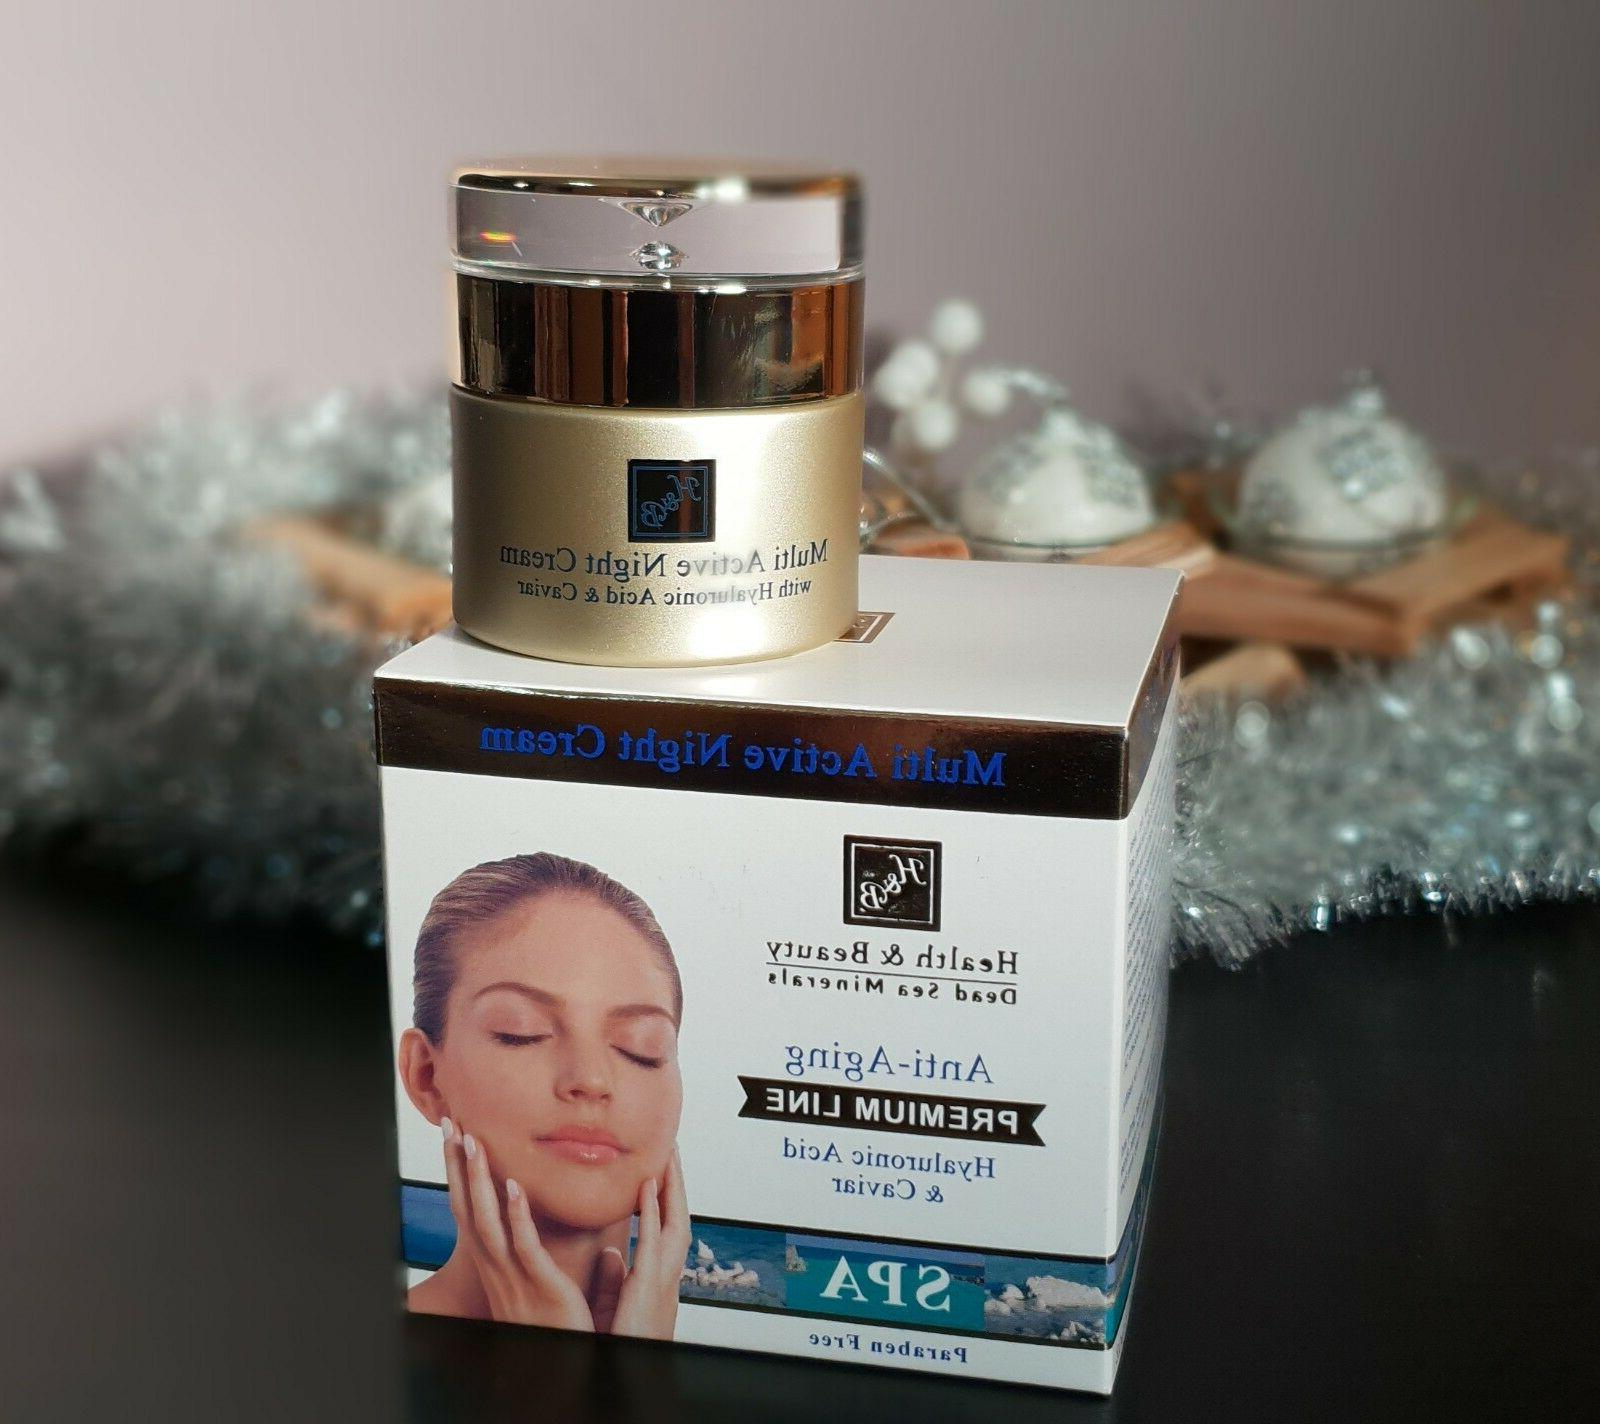 h and b multi active night facial